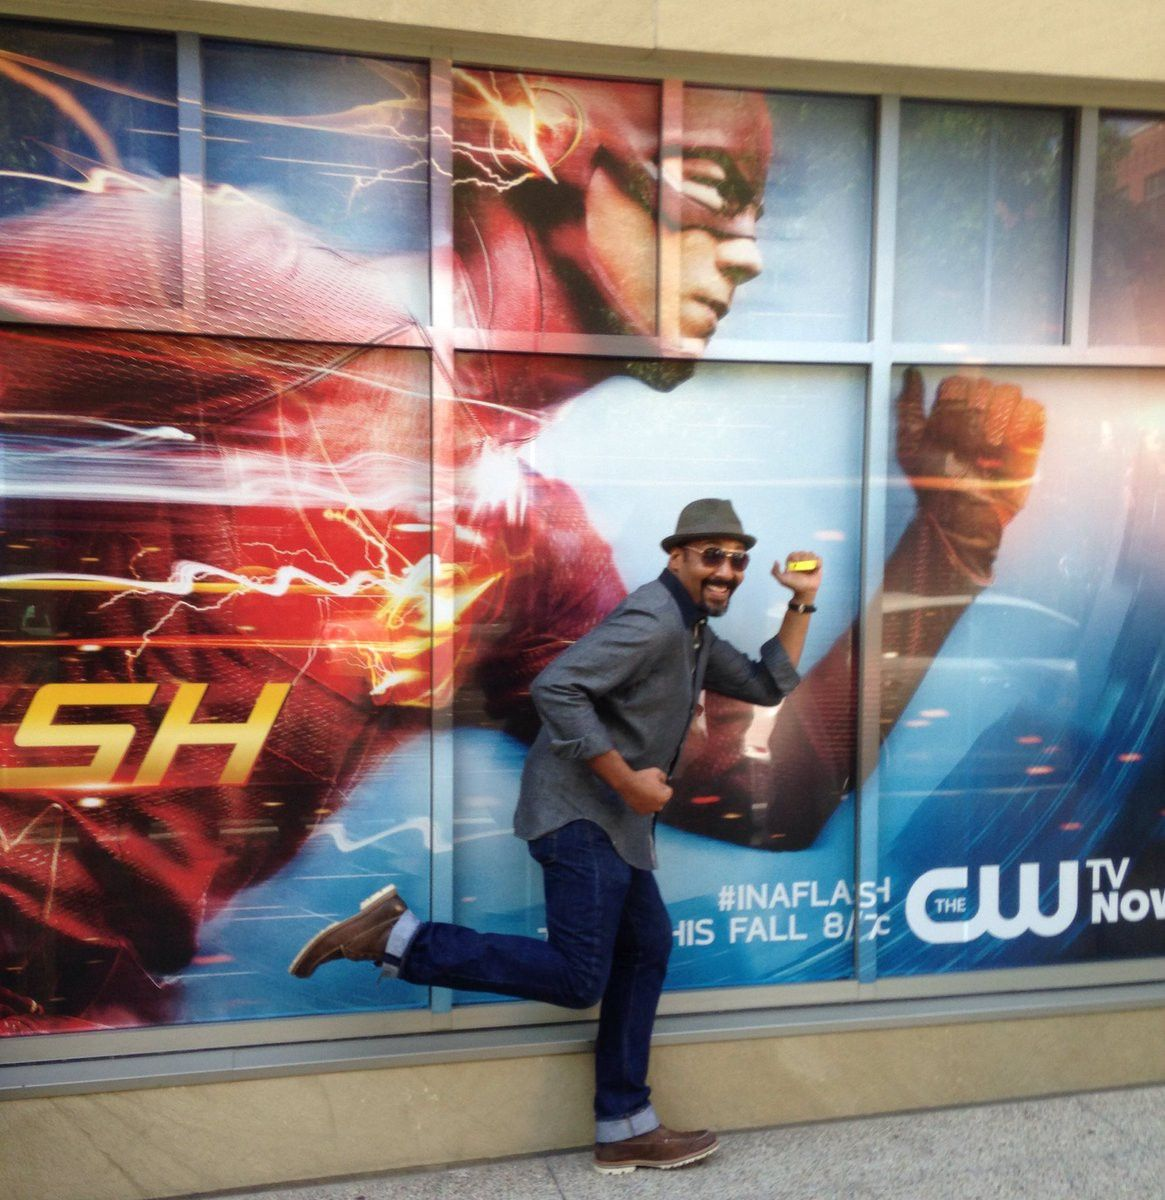 Pin by Daleen B. on The Flash | Supergirl and flash, Flash